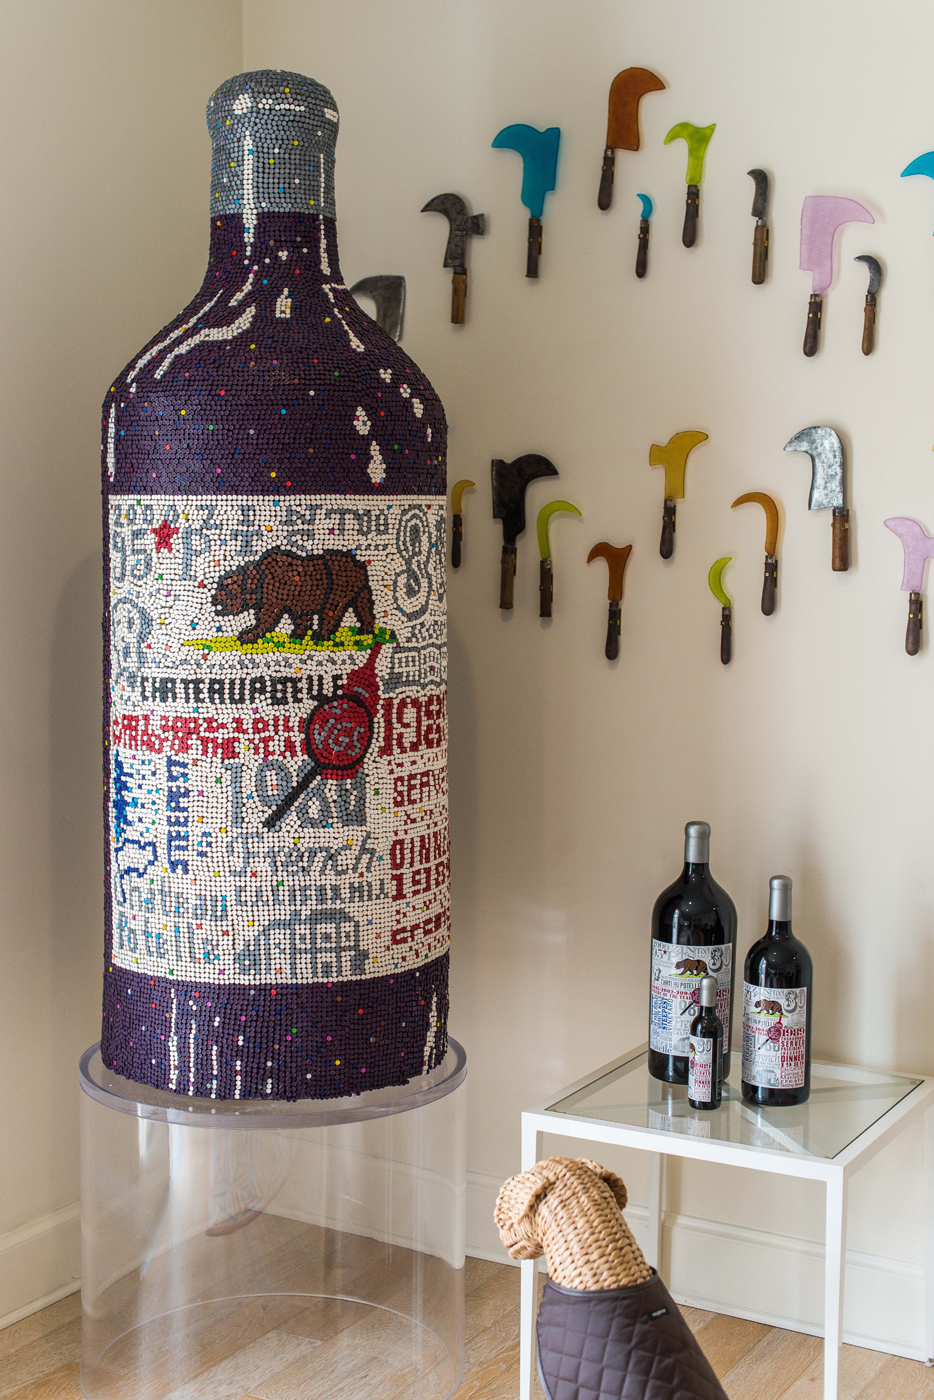 Artwork shown is an oversized wine bottle made of crayons by a Nashville artist | Savage Interior Design